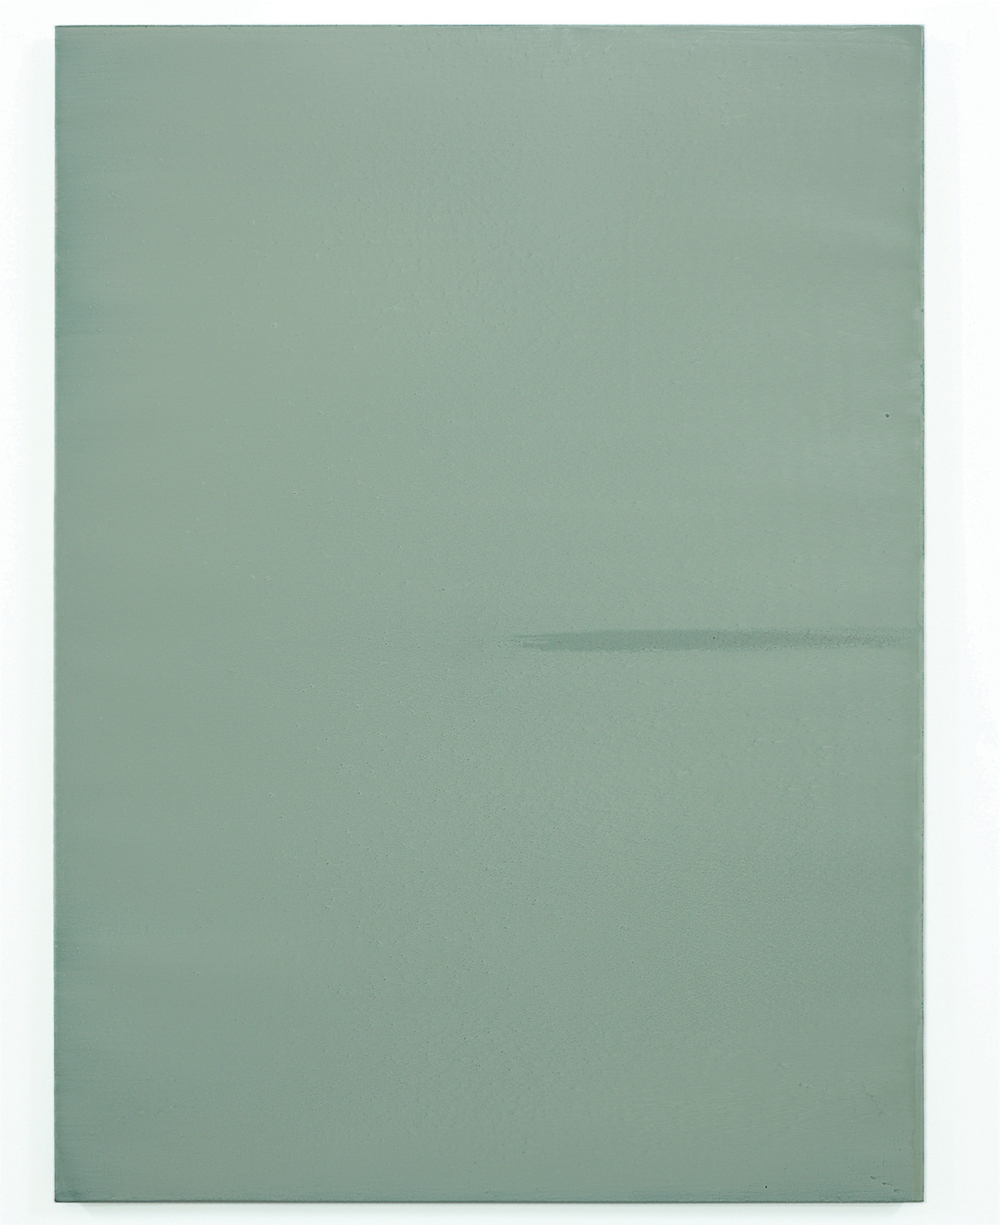 Luke HENG Green on White (Sideways) no.2 2015 Oil on linen H130 x W95 x D5 cm